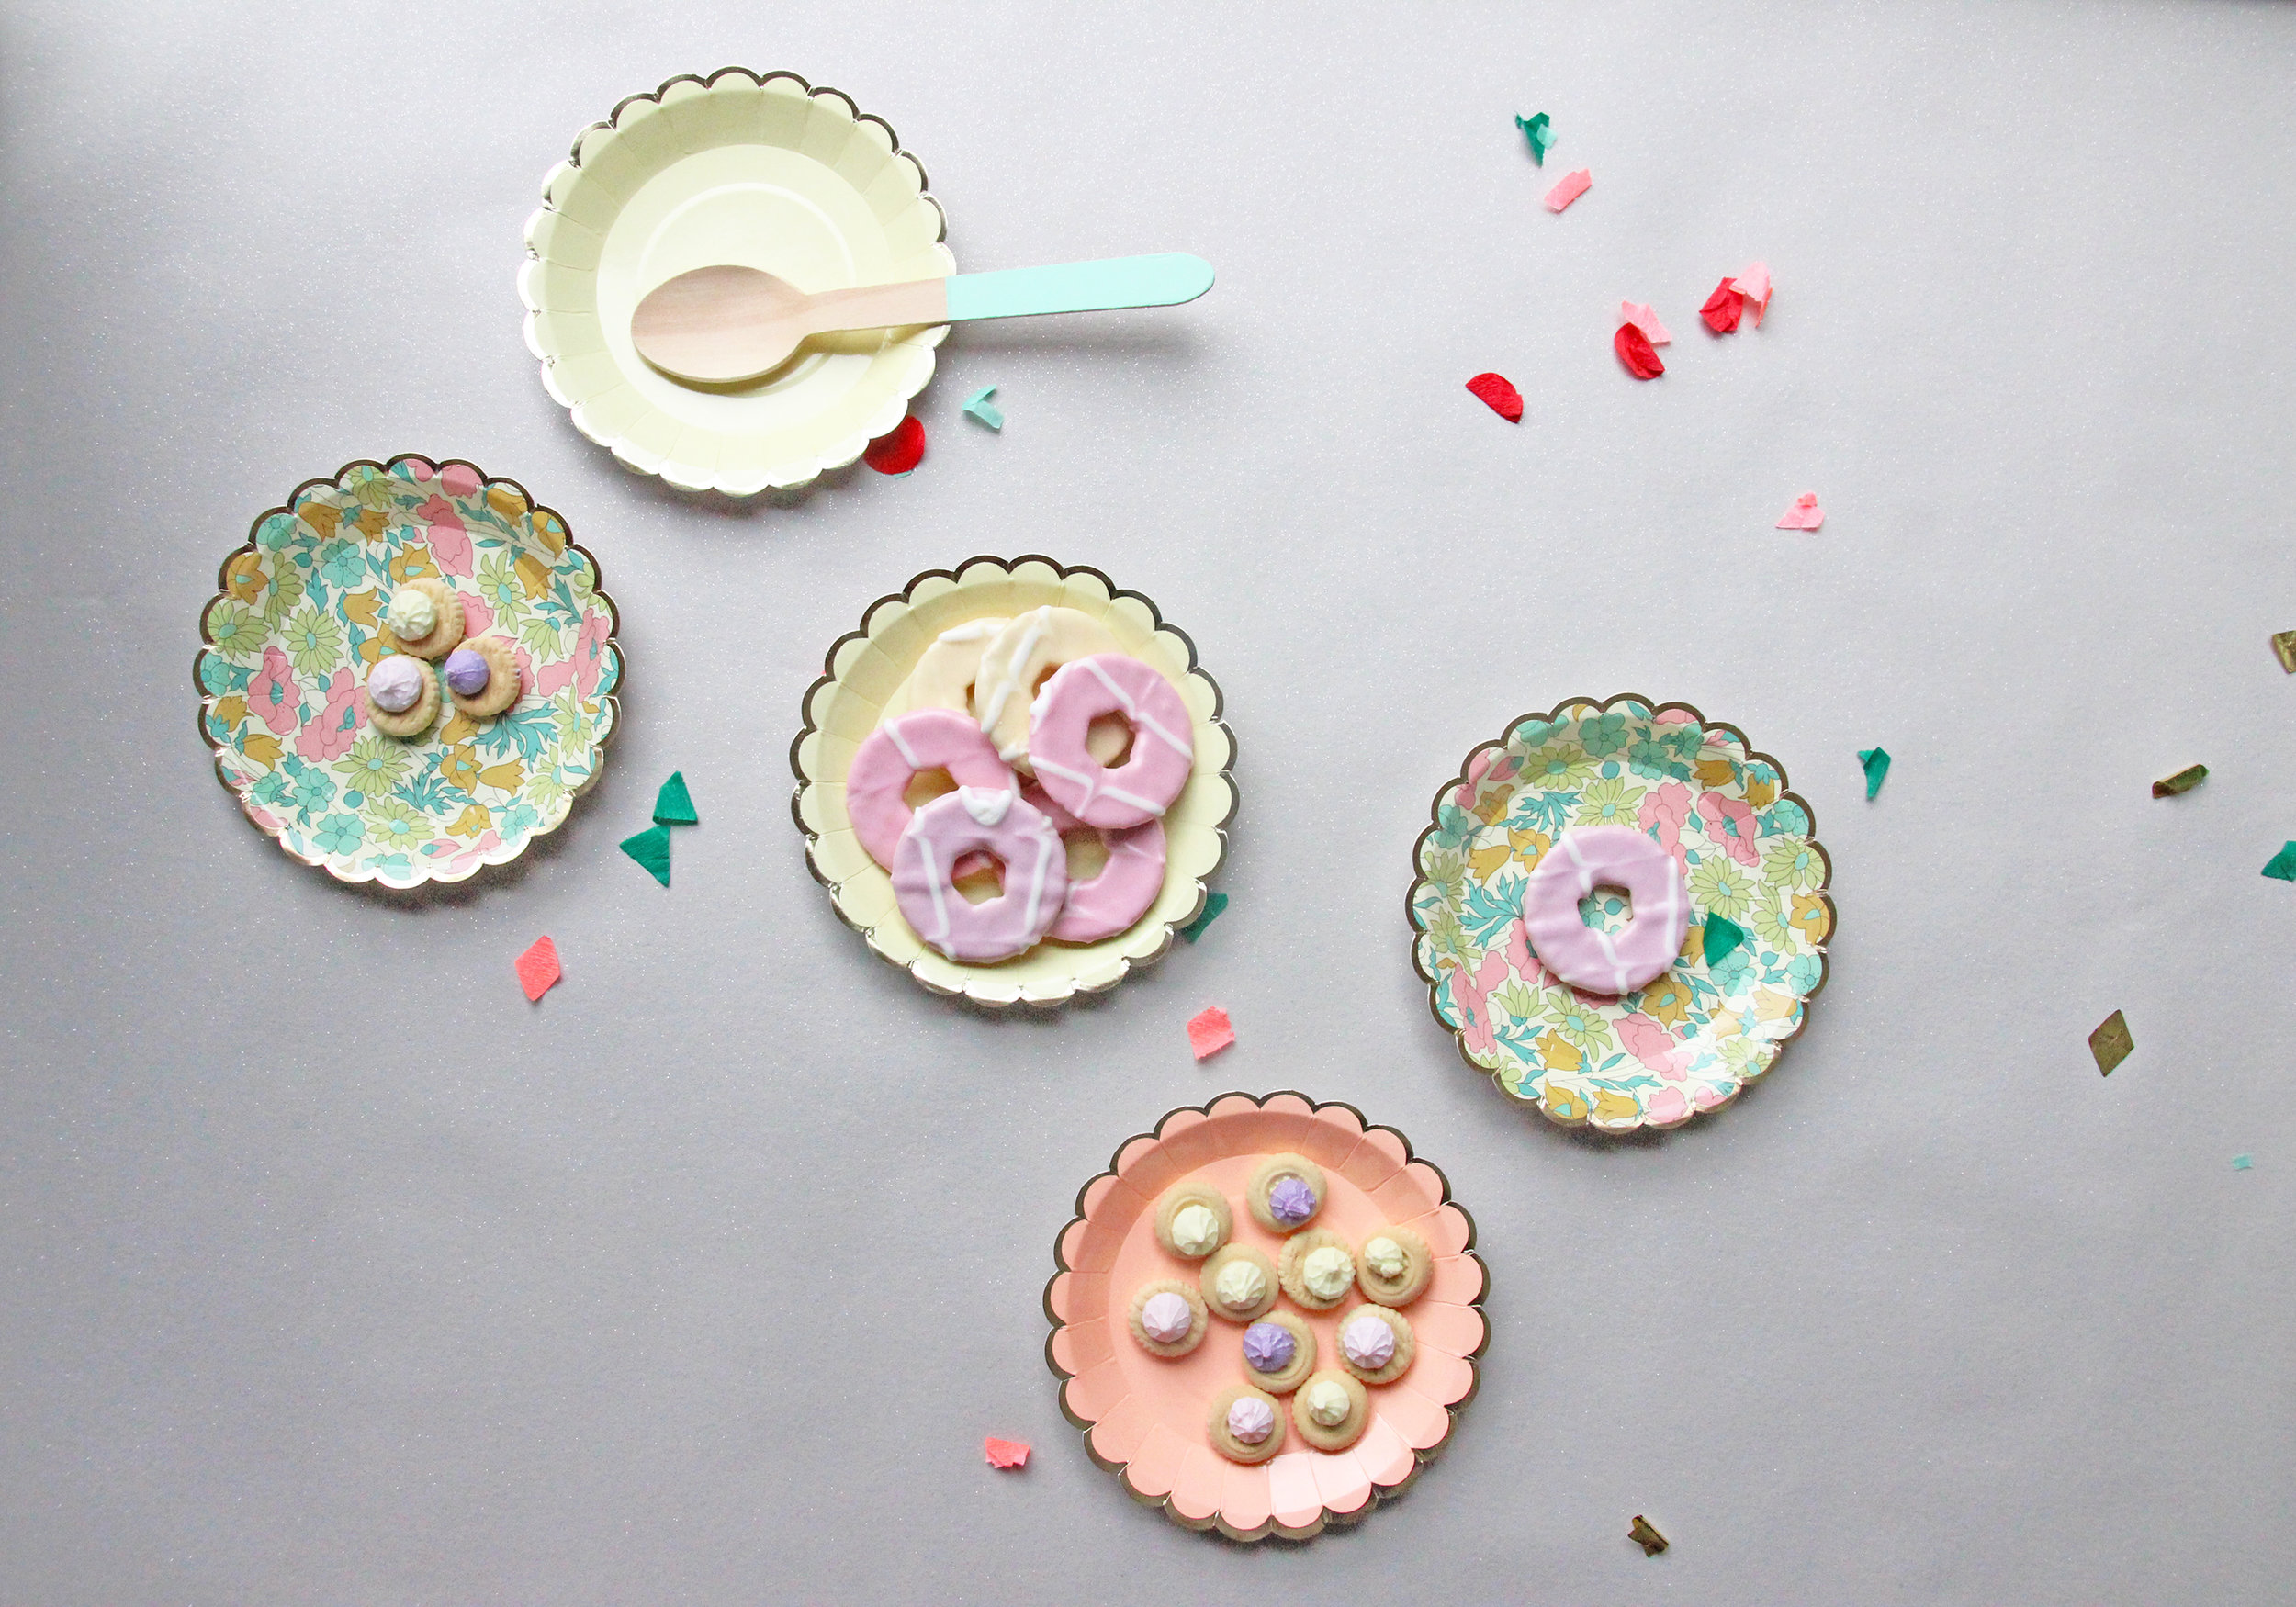 Spring party styling with Liberty print party ware